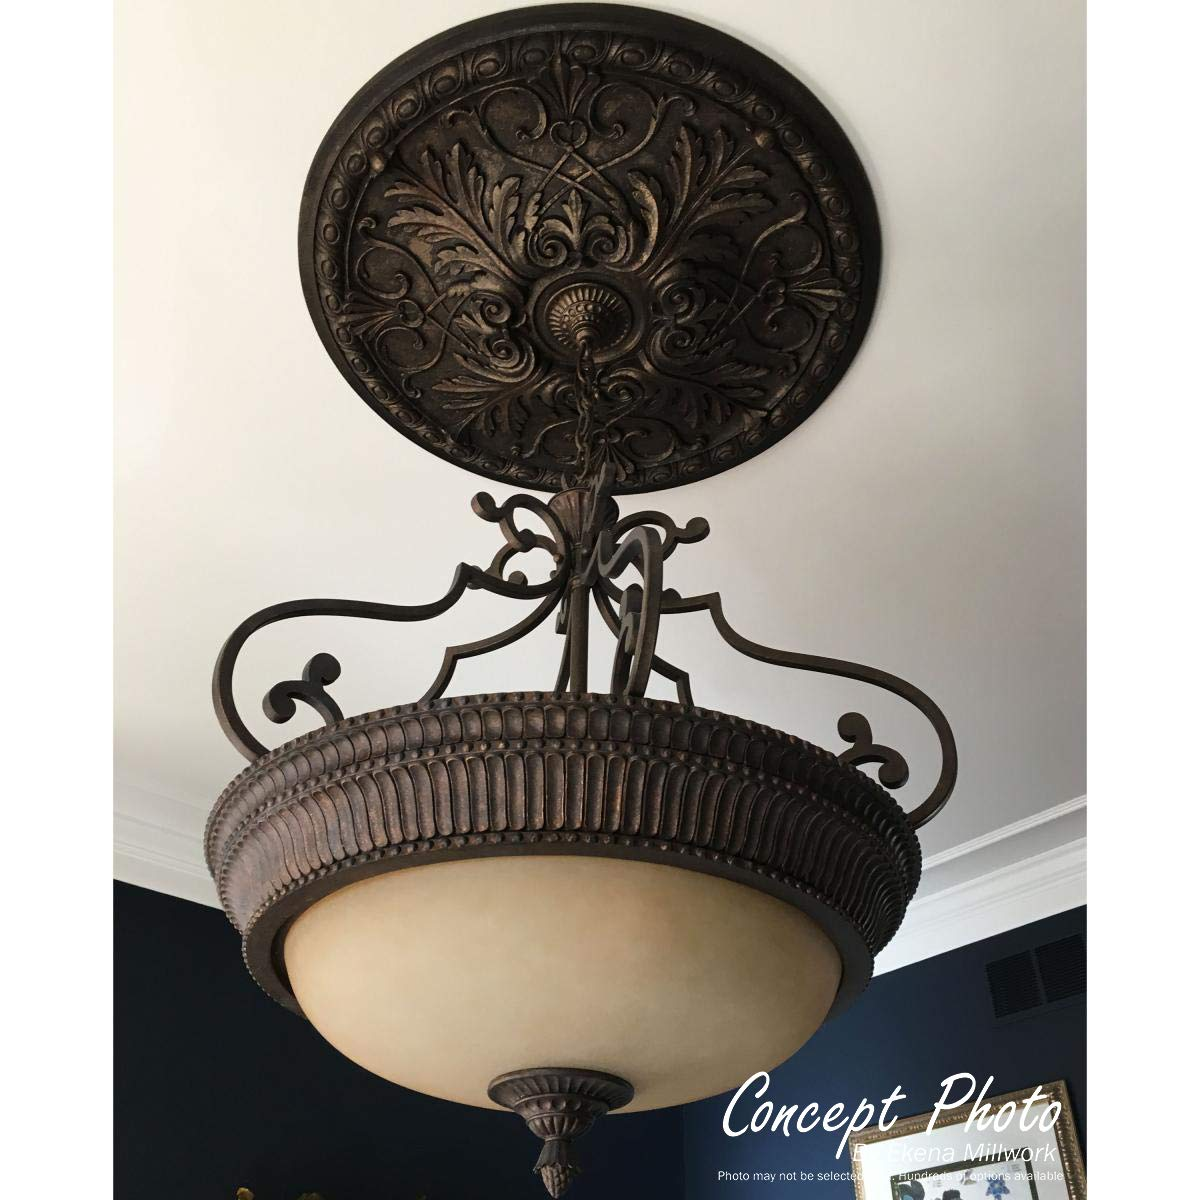 Ekena Millwork CM26HUSGS 22 1/8'' OD x 7 ID x 1 3/4'' P Hurley Ceiling Medallion (fits Canopies up to 7 1/4''), Hand-Painted, Steel Gray by Ekena Millwork (Image #6)